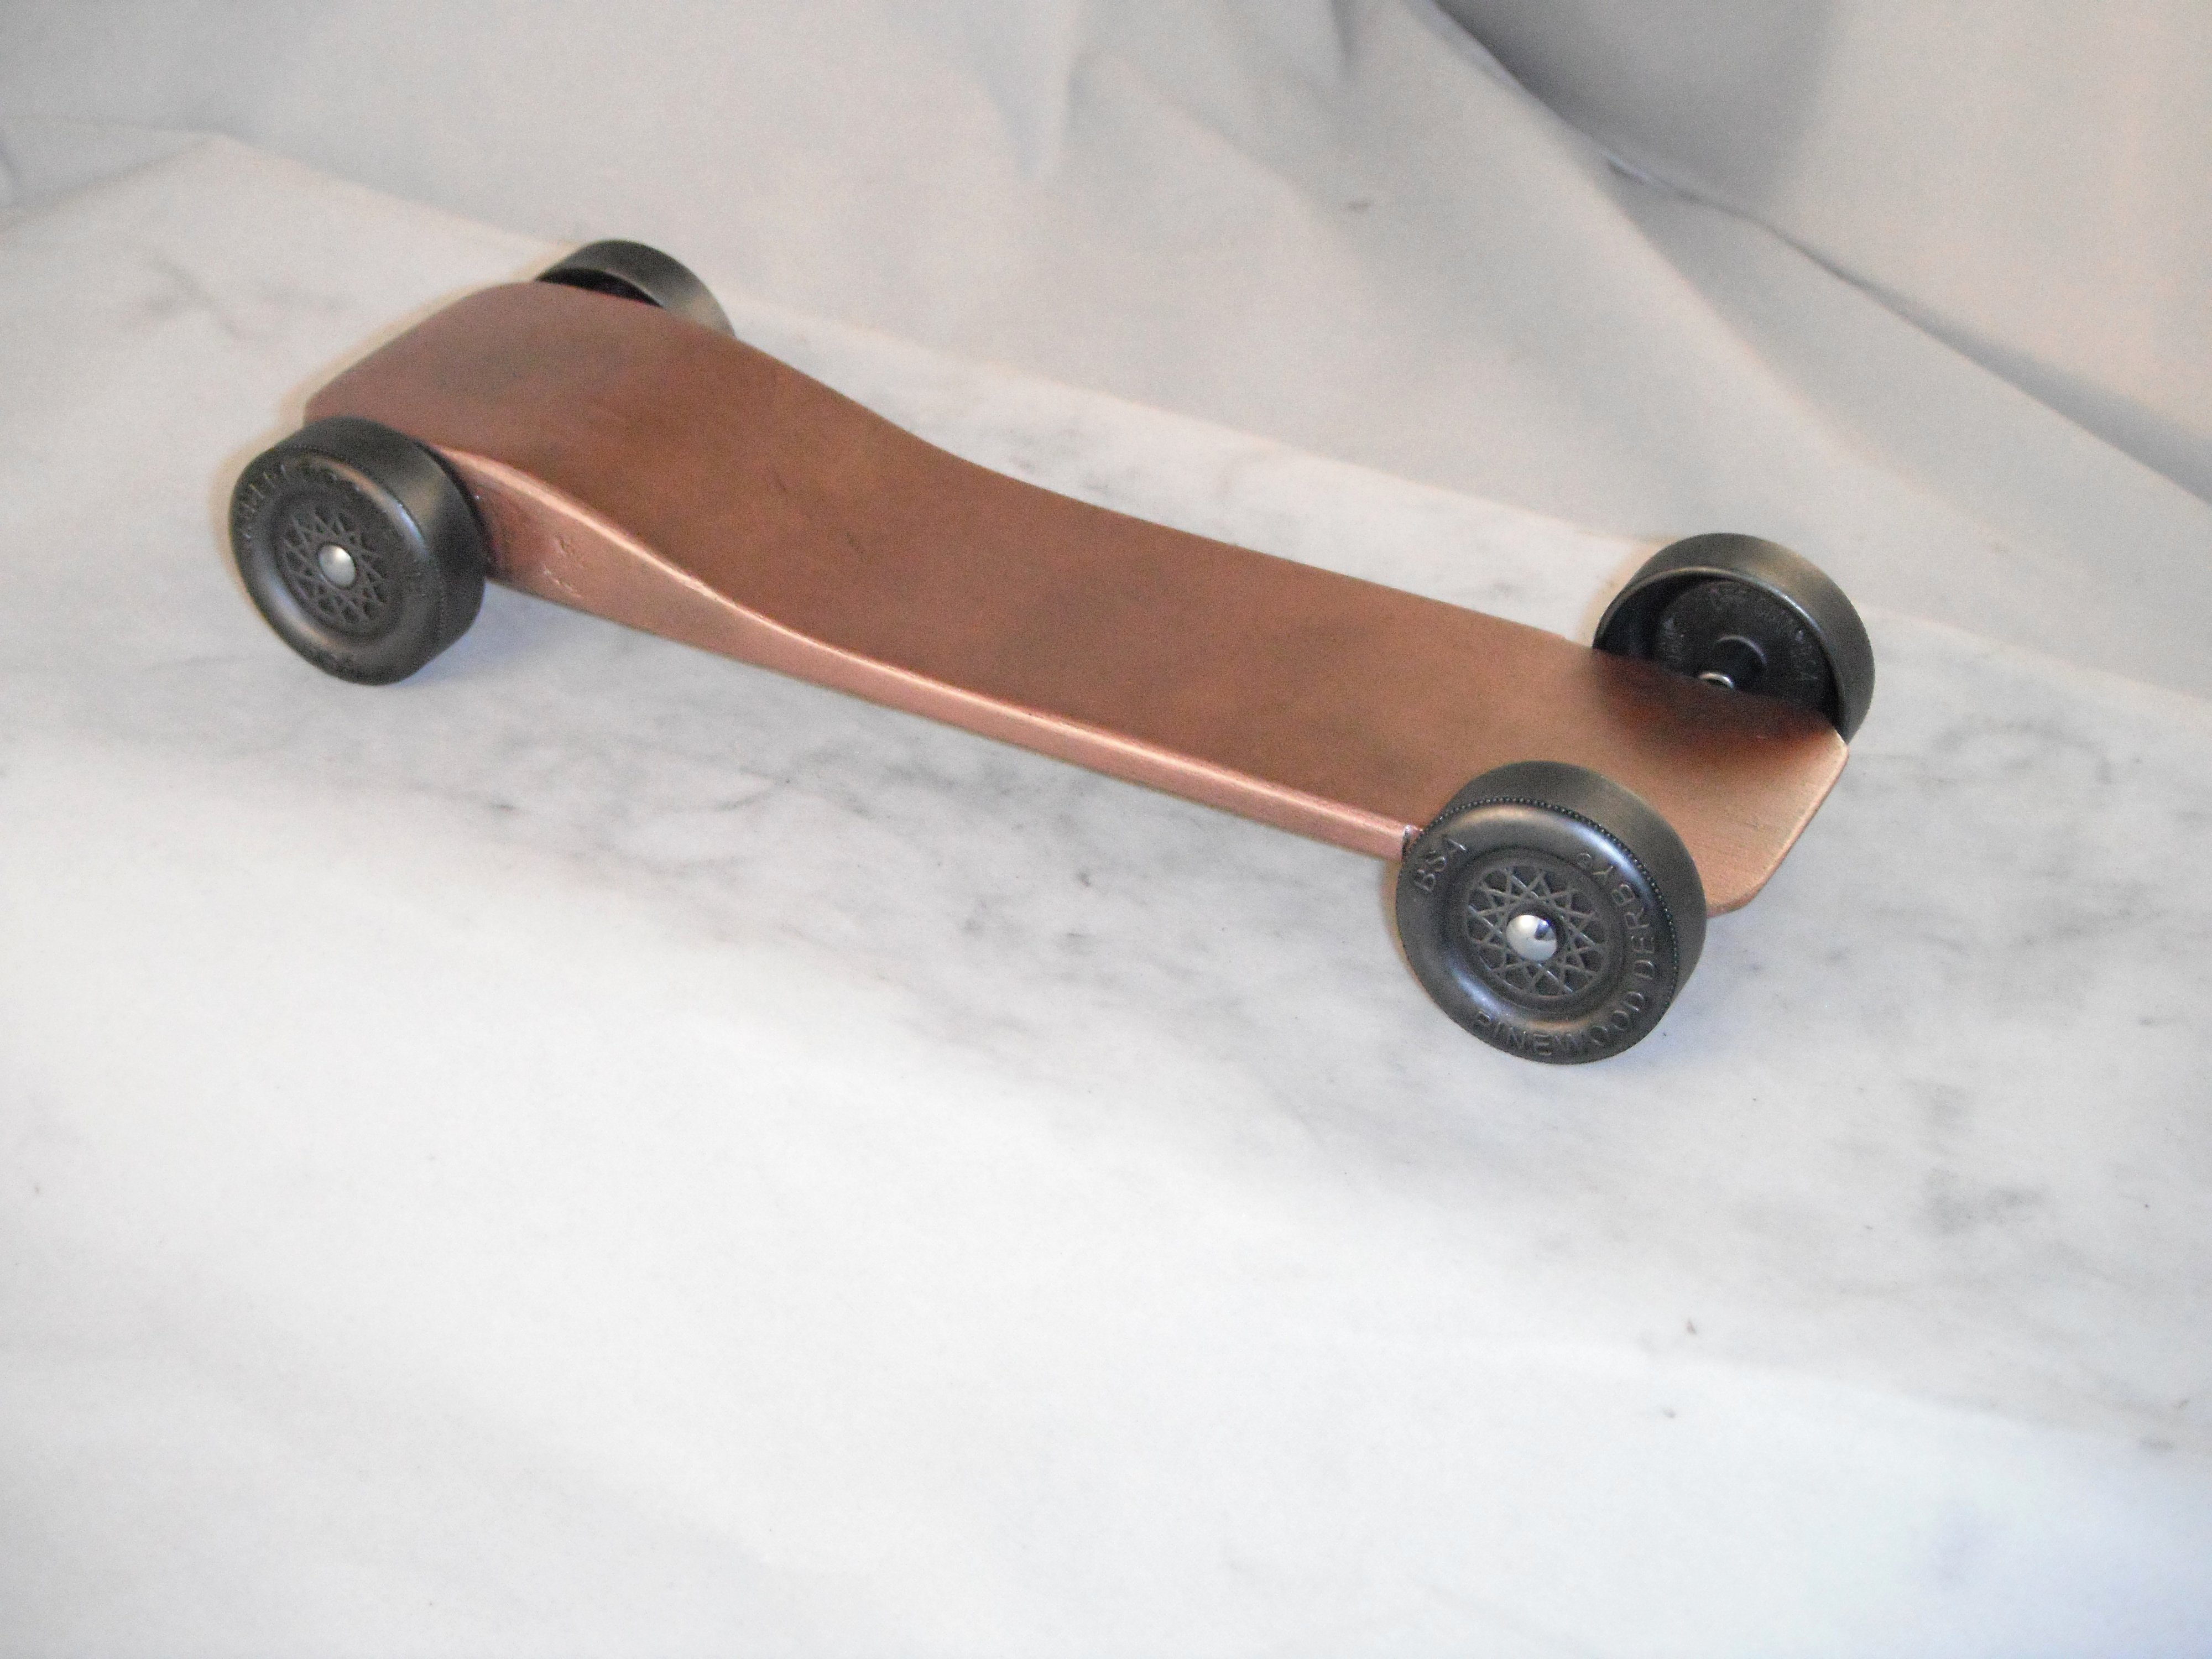 Pinewood Derby Car Plans Free Best Of Pinewood Derby Car Kit Fast Speed Ready to assemble Warped